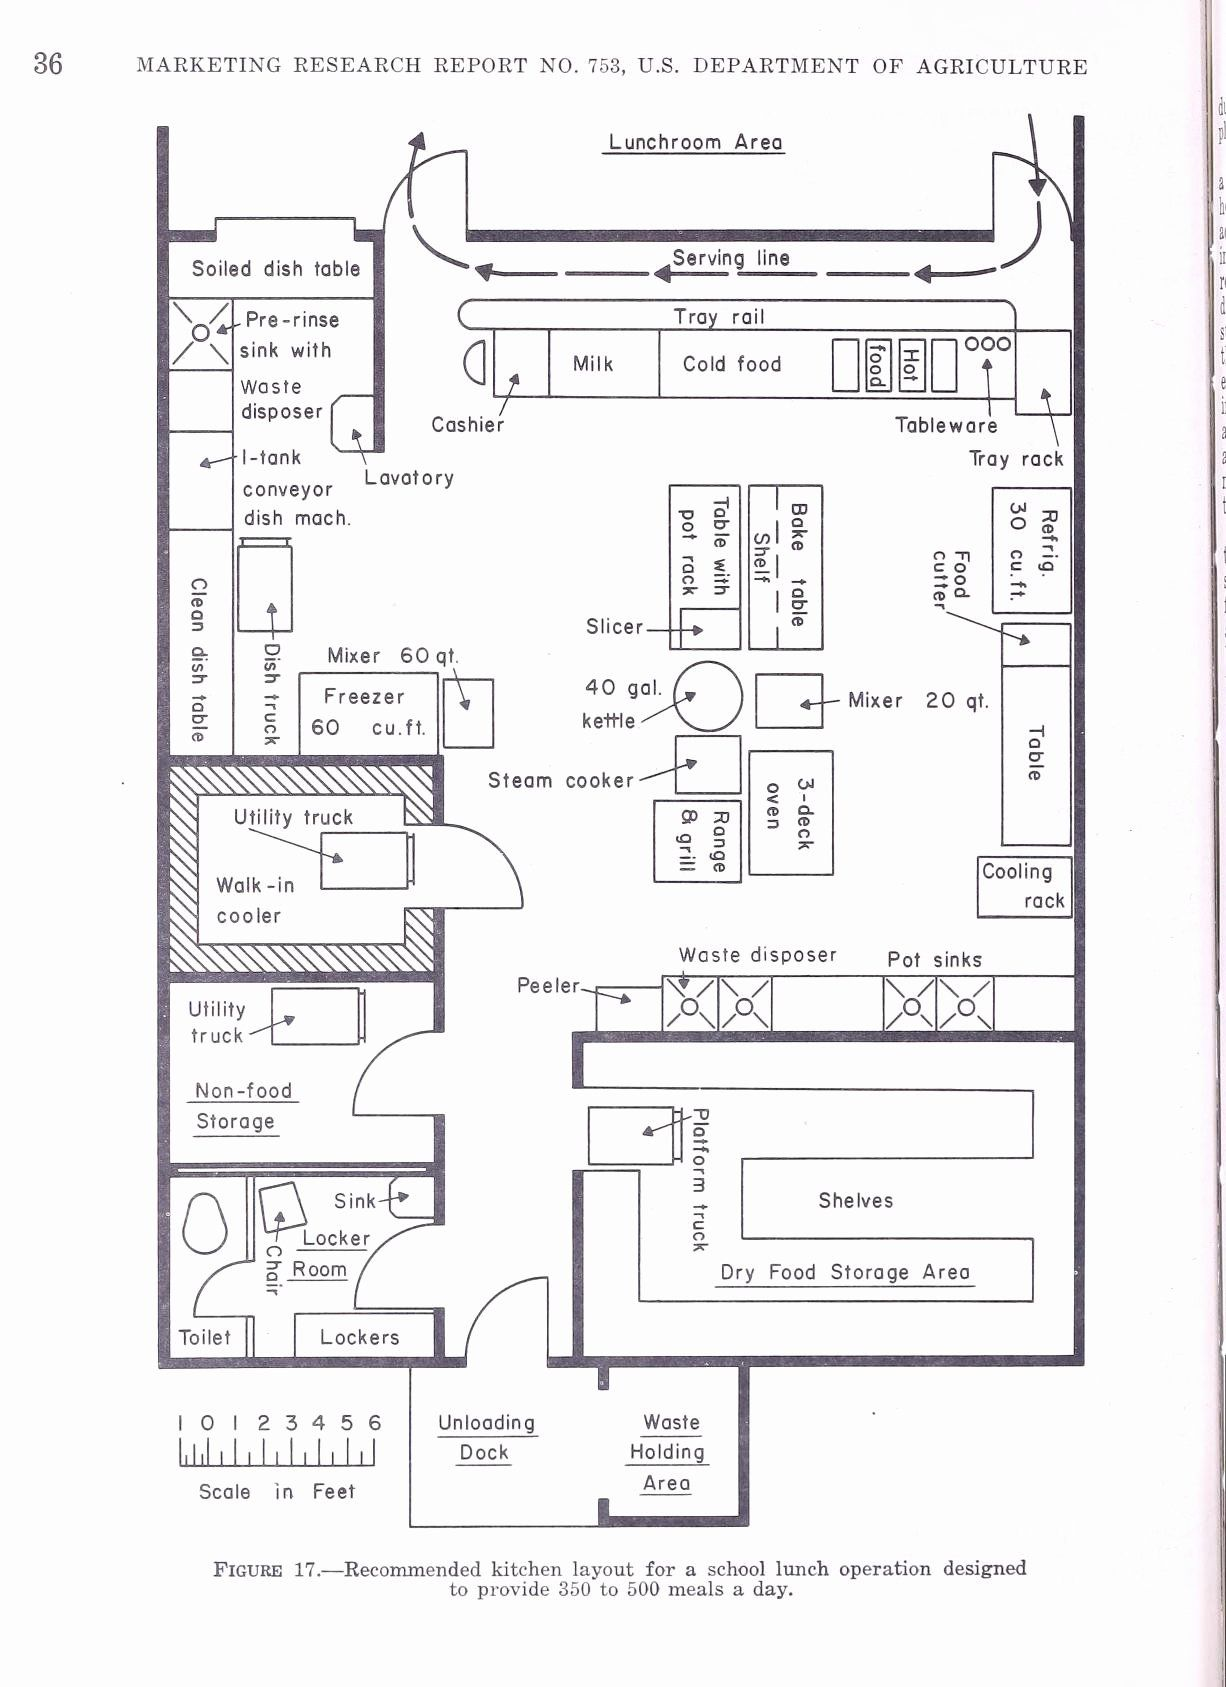 Kitchen Lay Out Plans Lovely Apron Strings And Kitchen Sinks